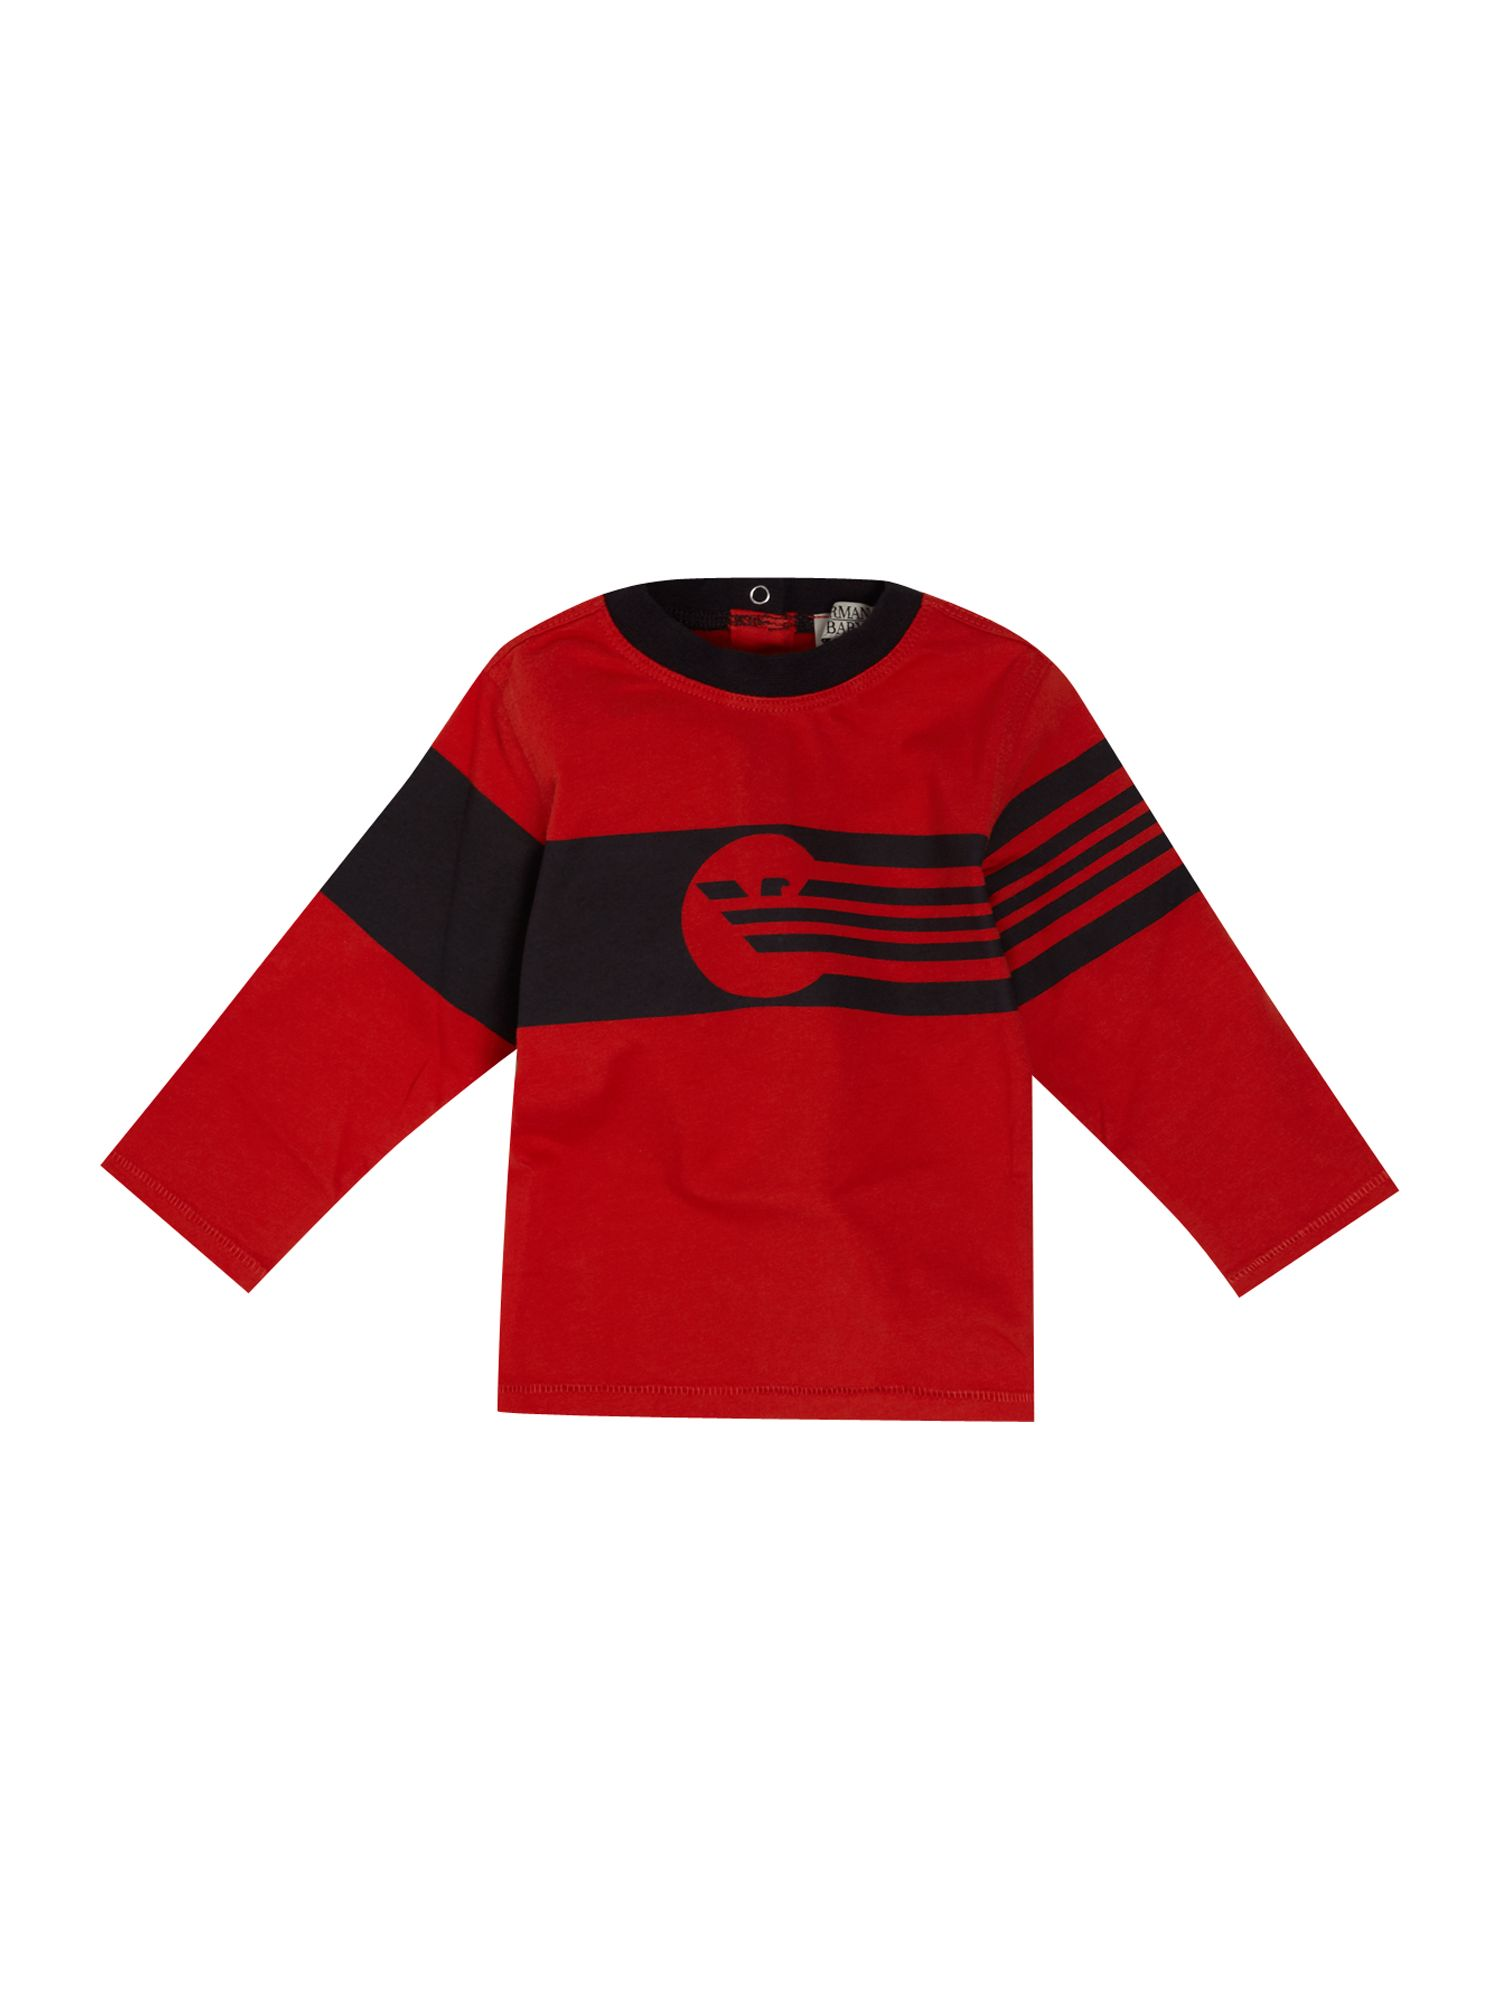 Armani Junior Long-sleeved logo t-shirt, Red product image